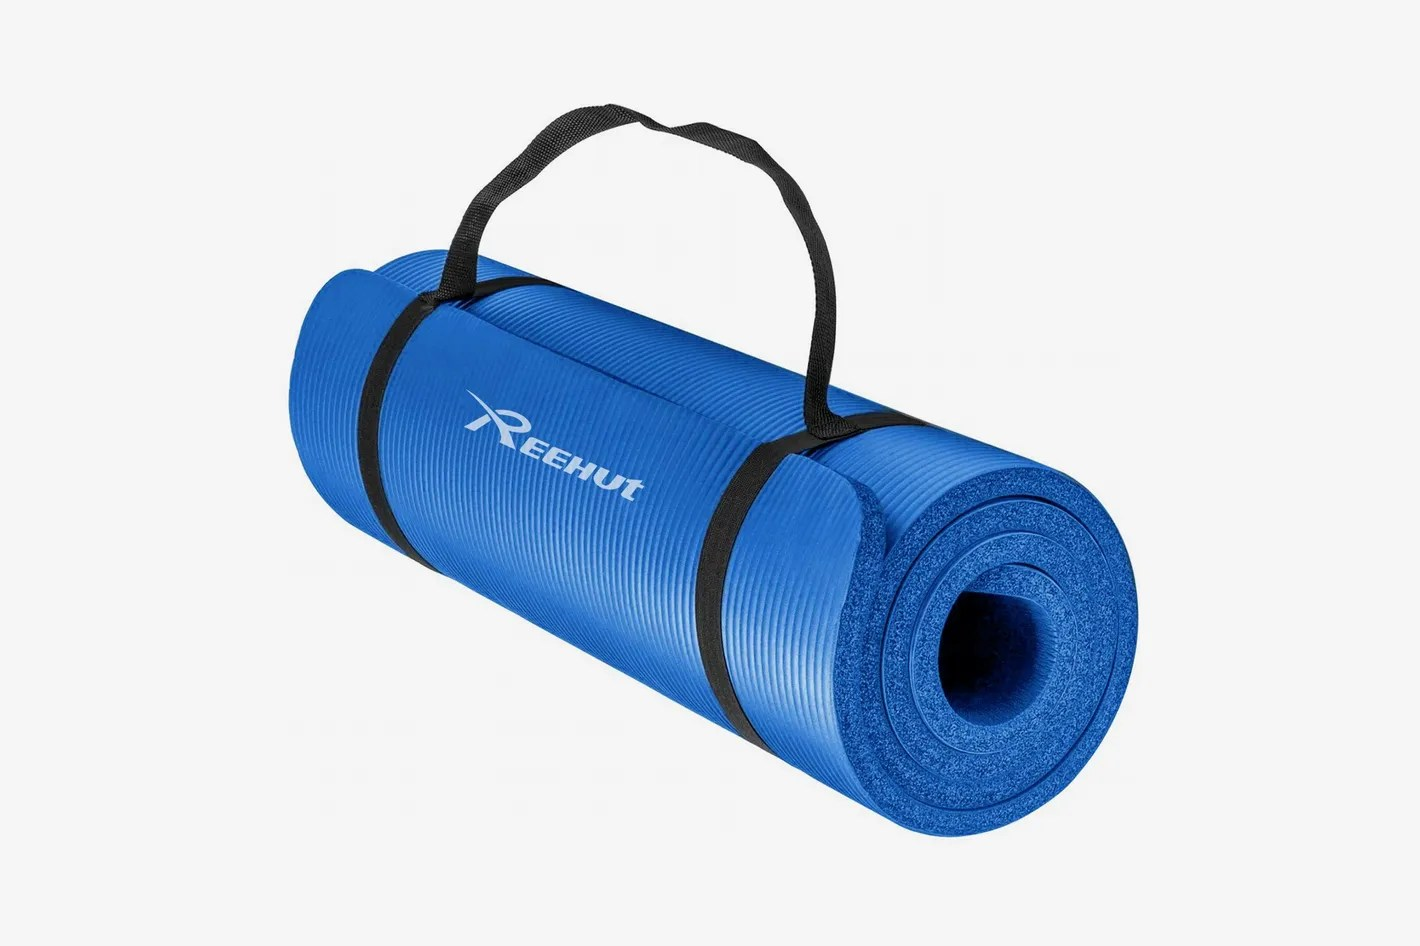 Amazon Yogamatte Reehut 2 Inch Extra Thick High Density Yoga Mat With Carrying Strap